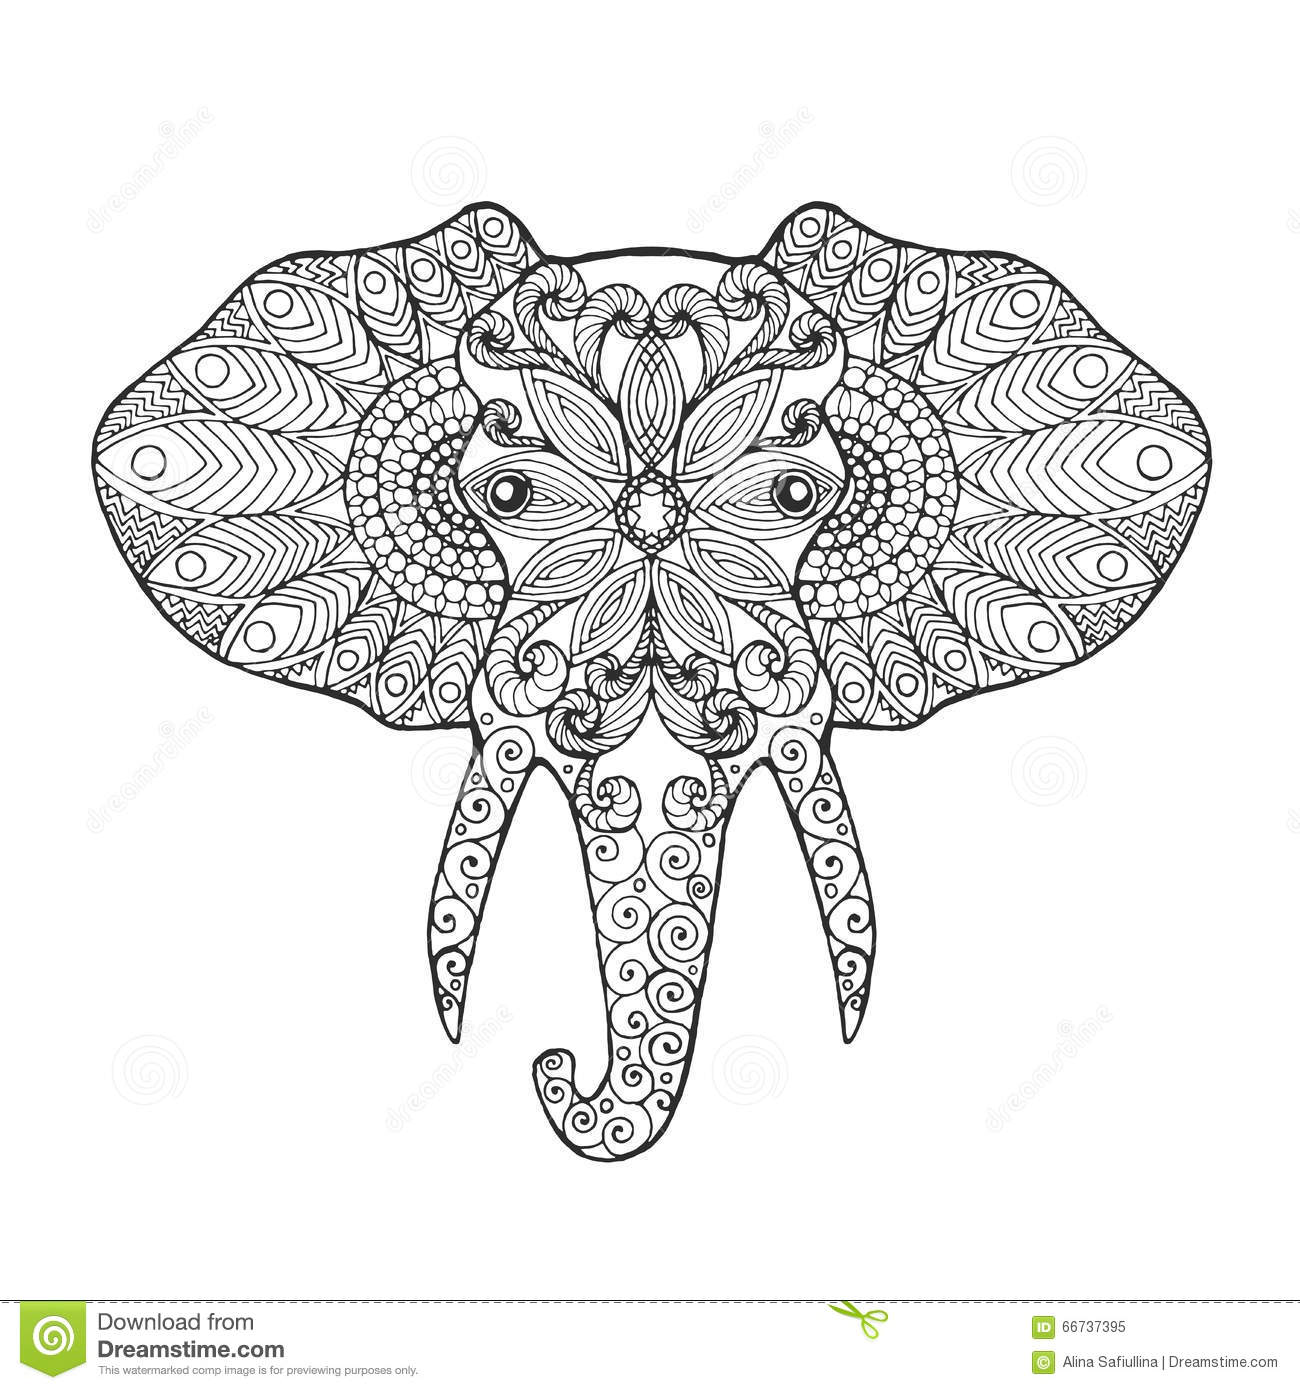 Elephant Head Coloring Pages For Adults.